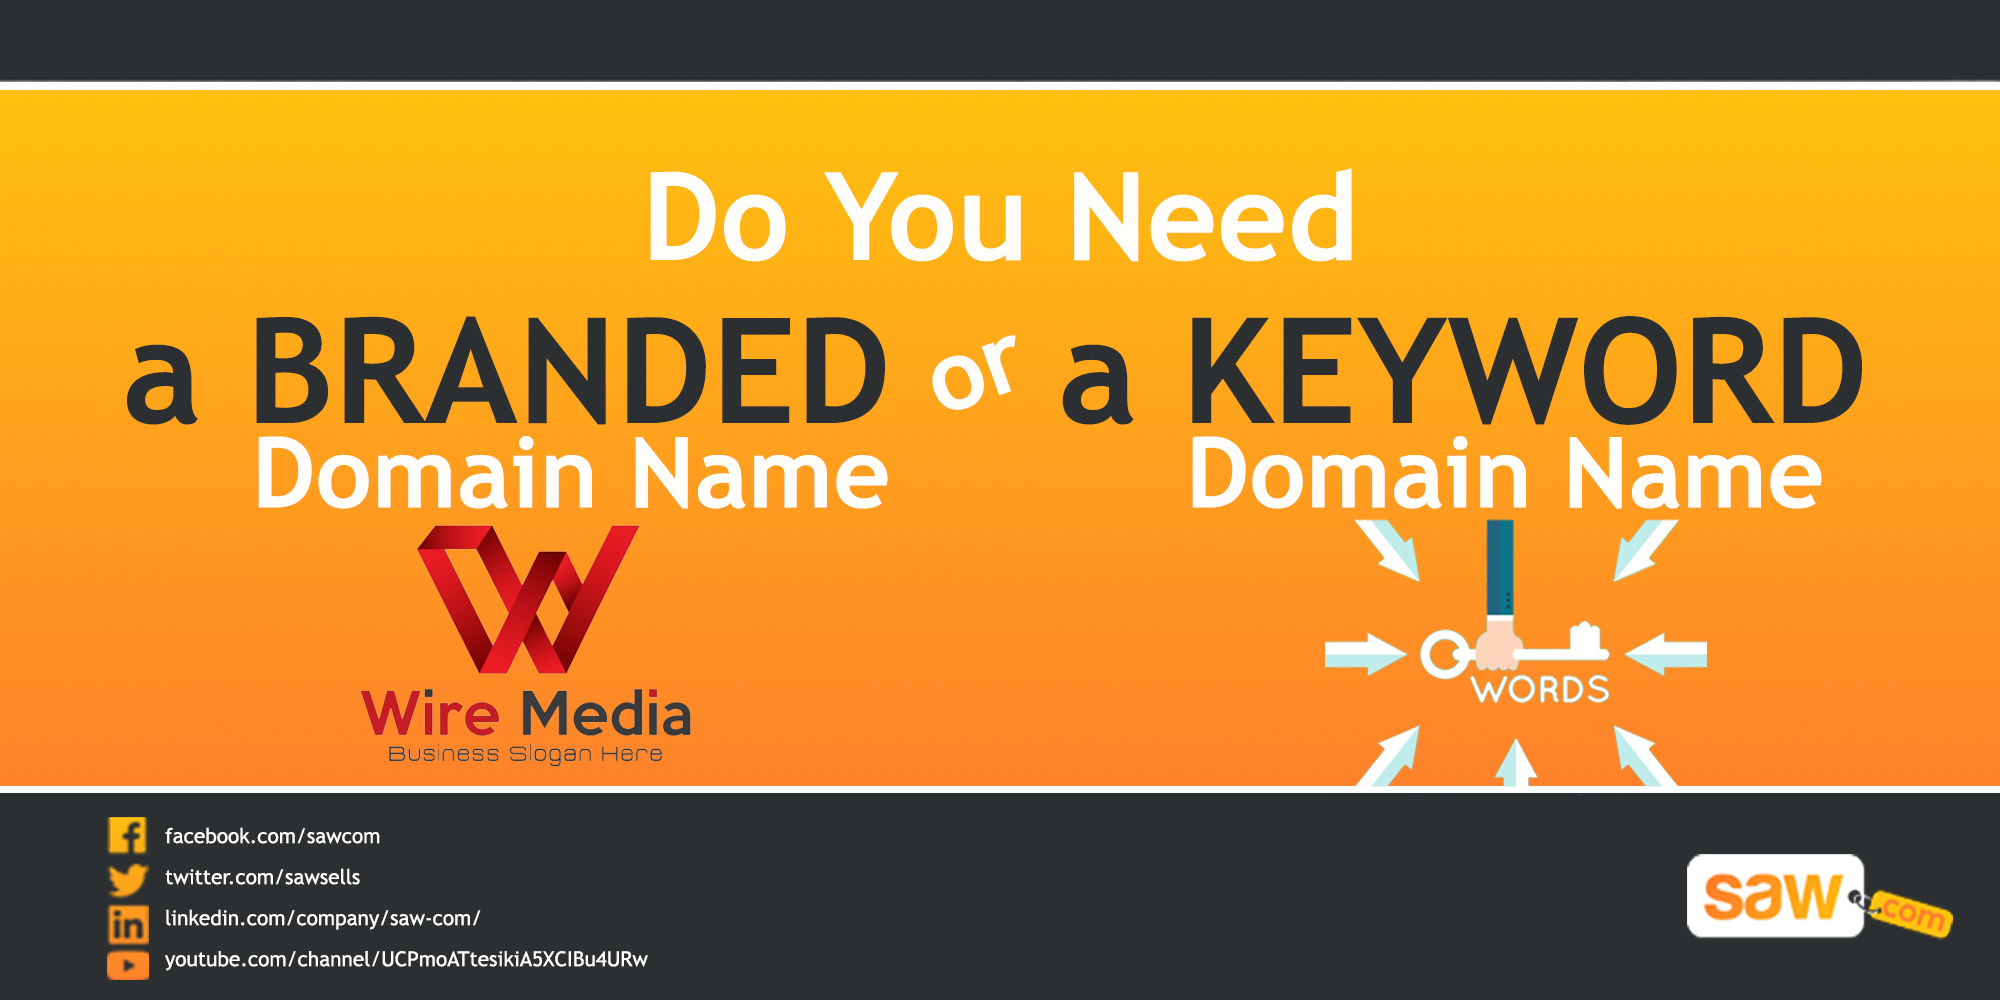 Should You Choose a Branded Domain or a Keyword Domain?